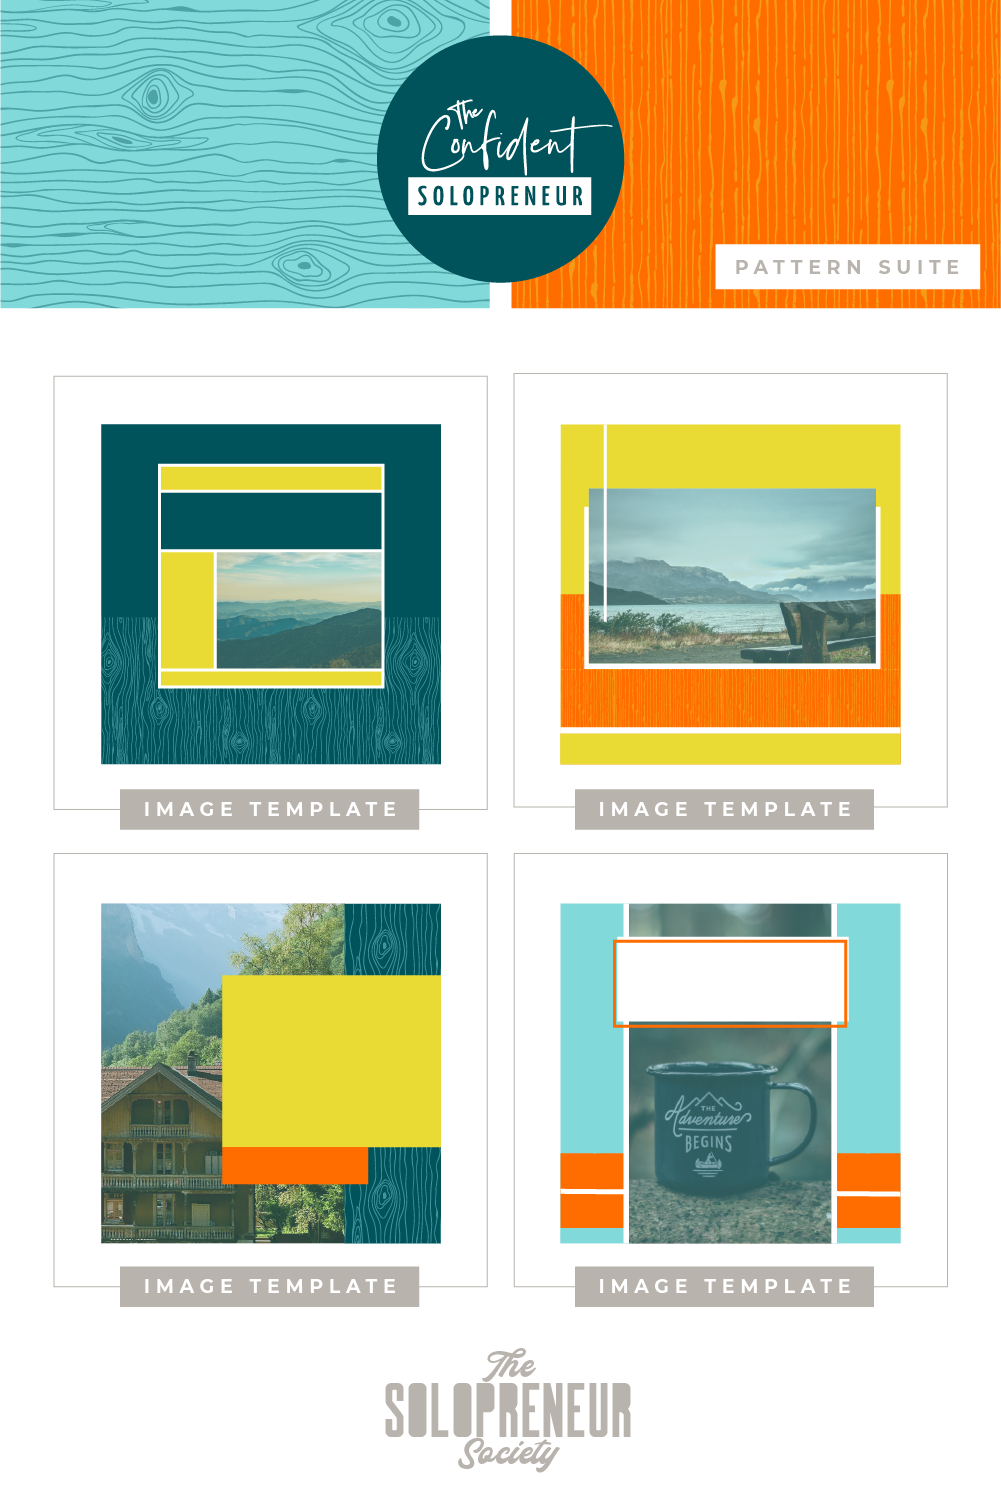 Social Media Image Template Designs for The Confident